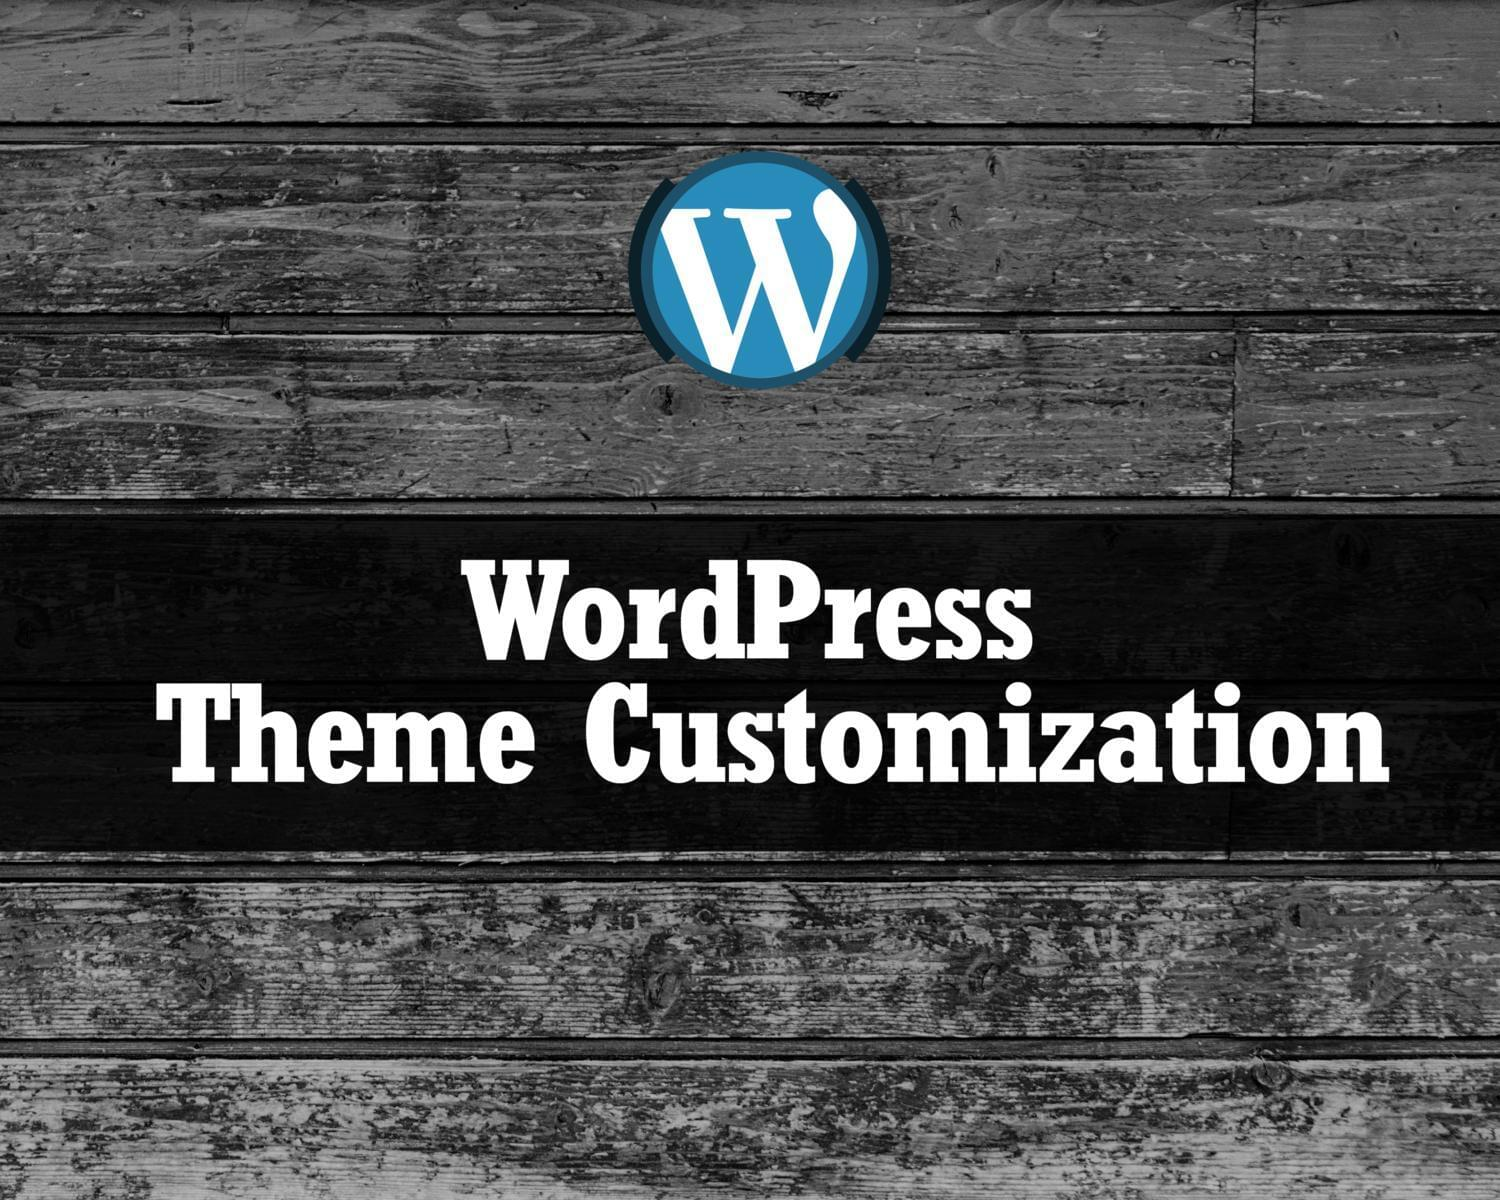 WordPress Theme Customization (Basic) by hasanet - 117577